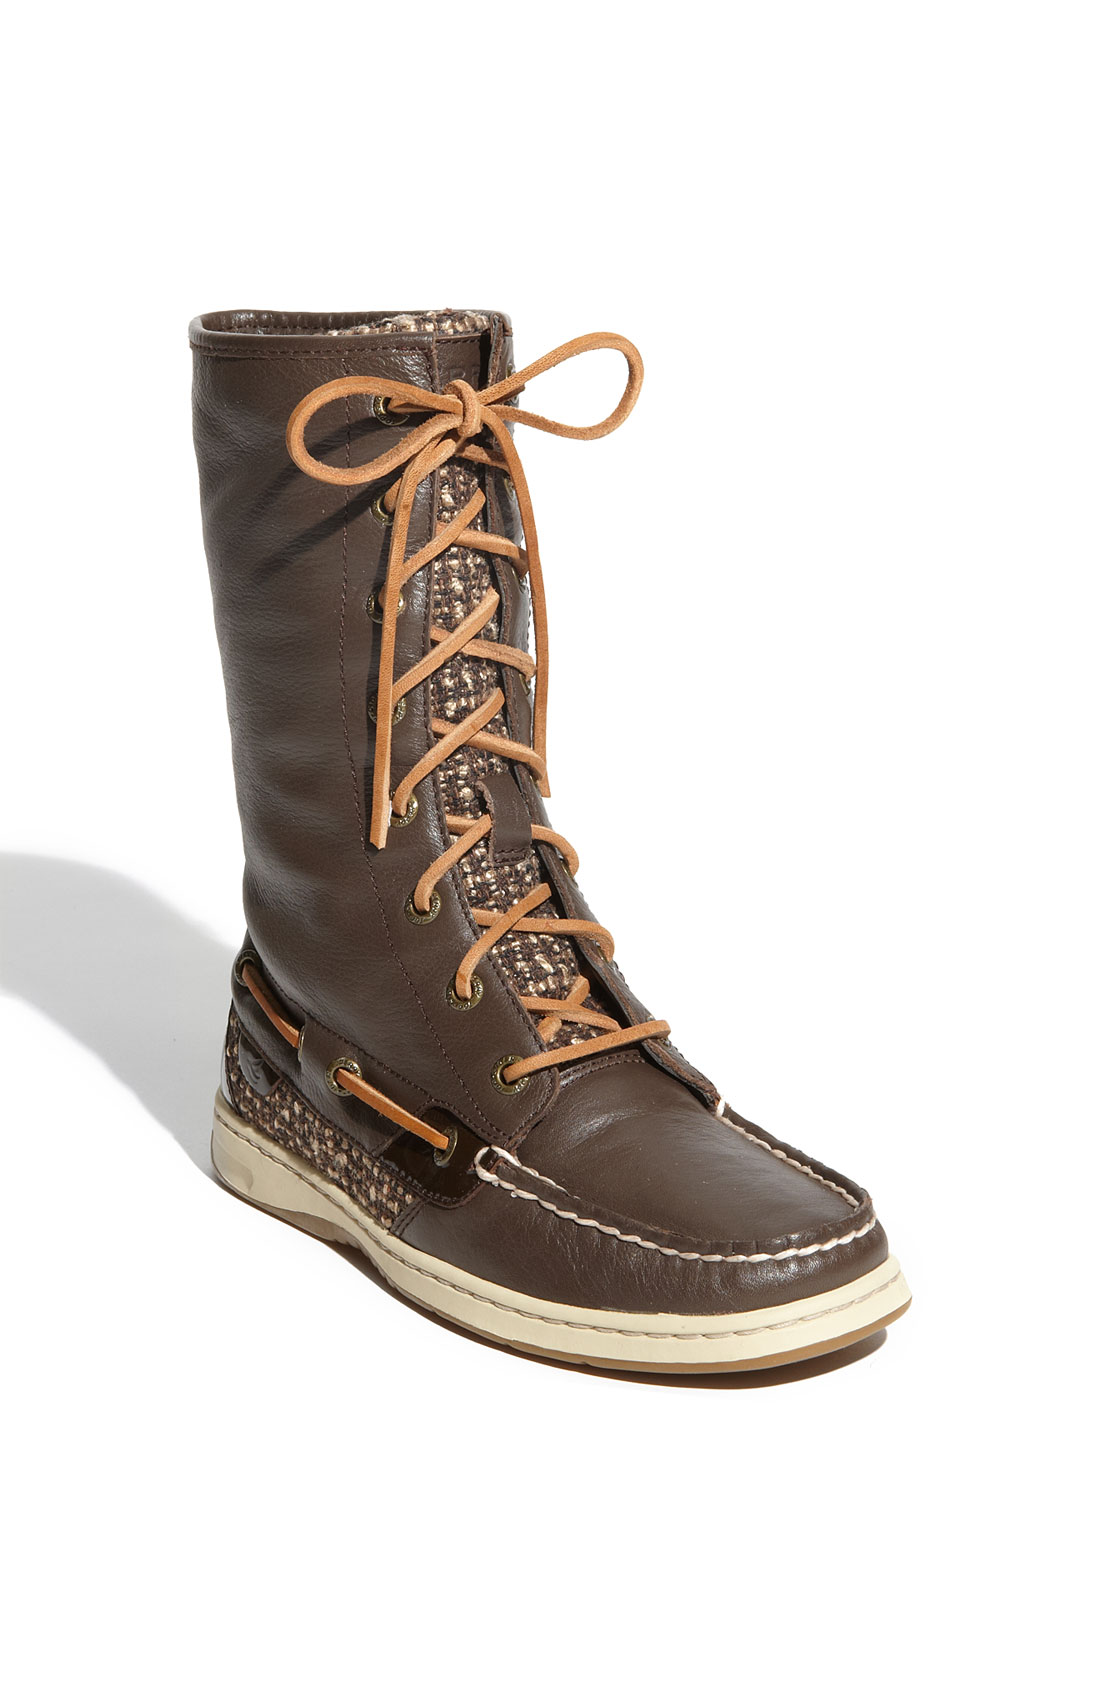 sperry top sider ladyfish boot in brown lyst